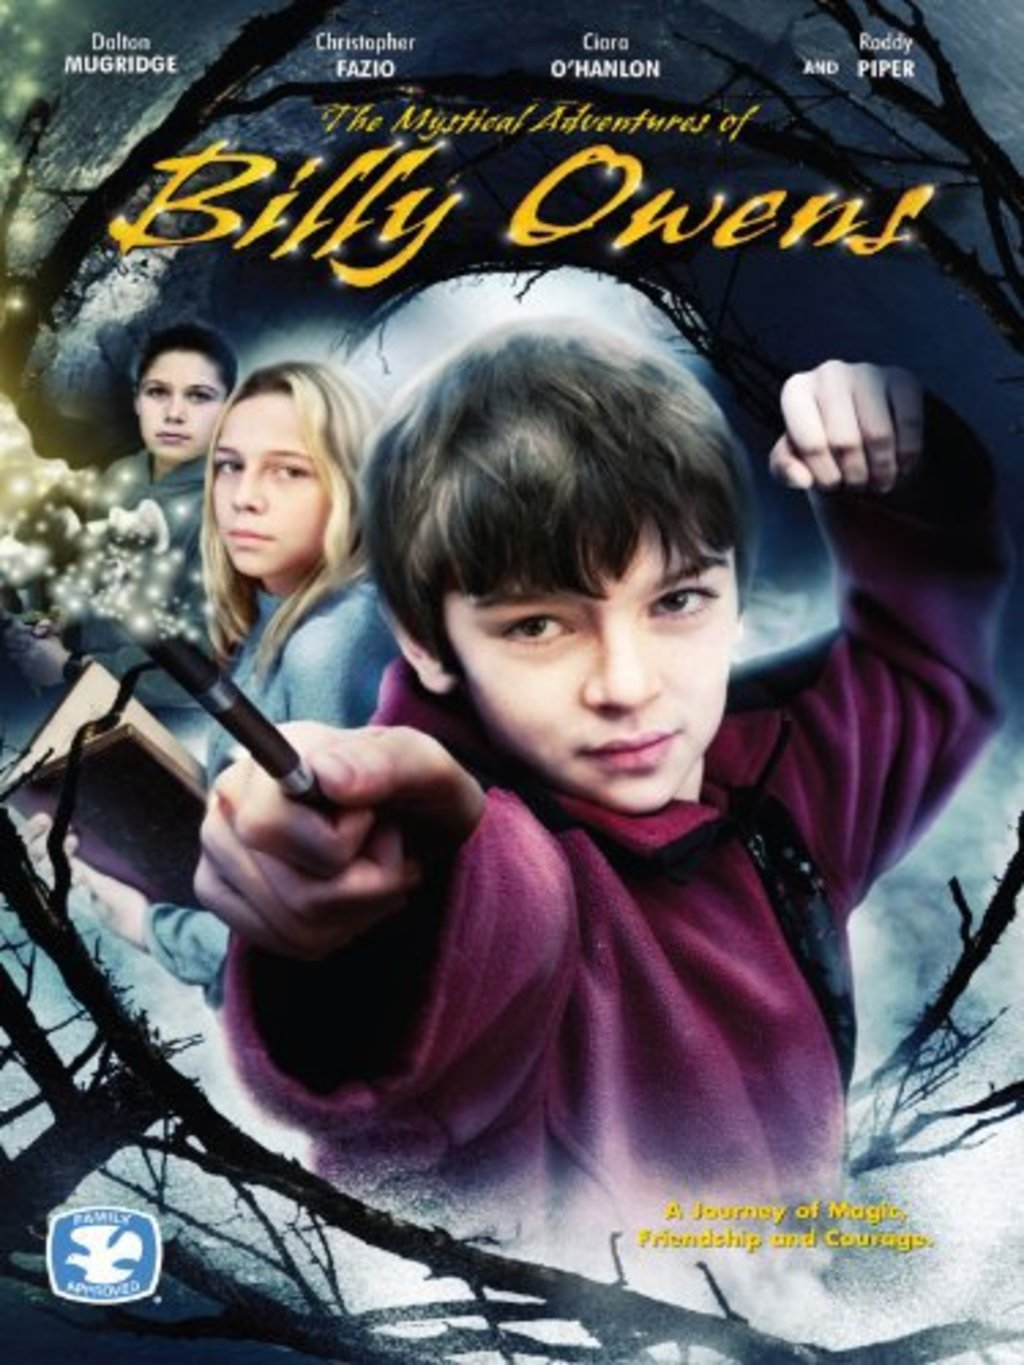 Watch The Mystical Adventures of Billy Owens on Netflix Today